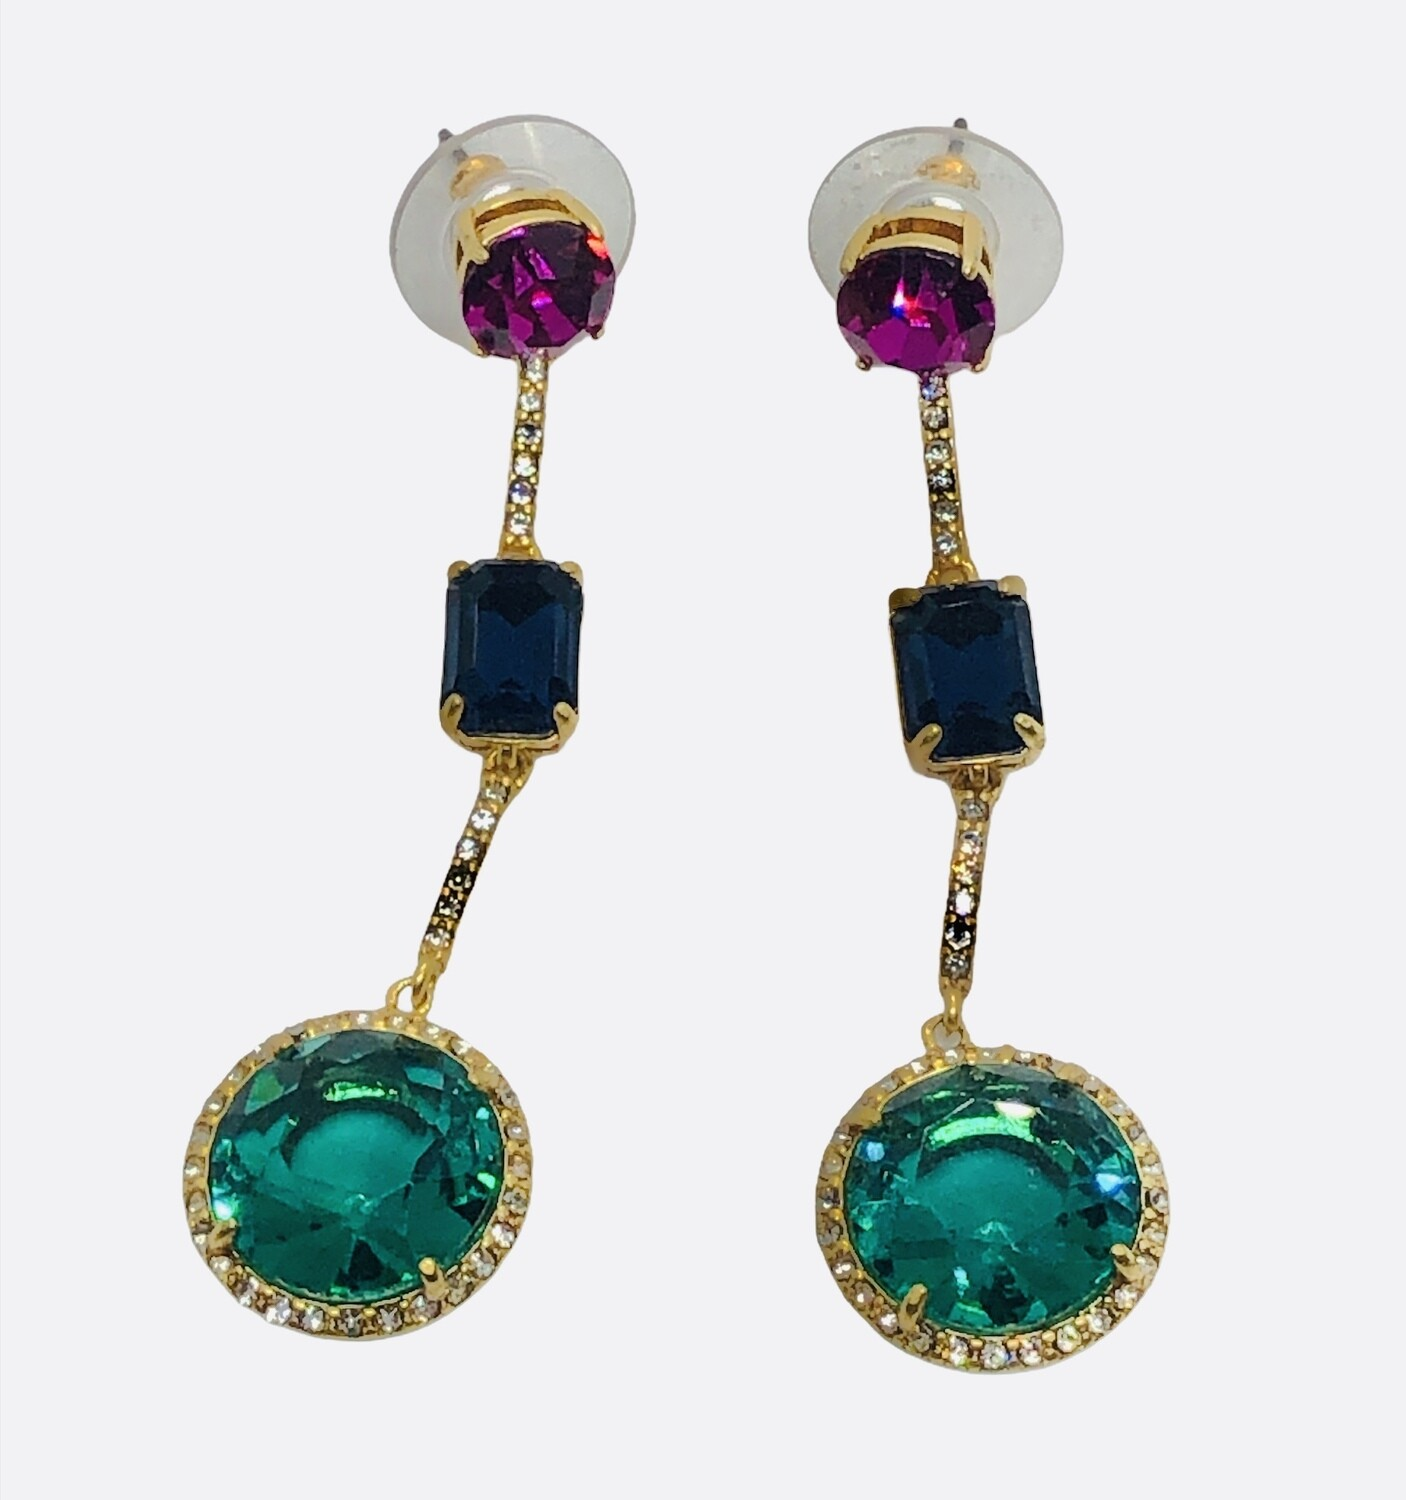 NEW Multicolored Gem and Rhinestone Earrings